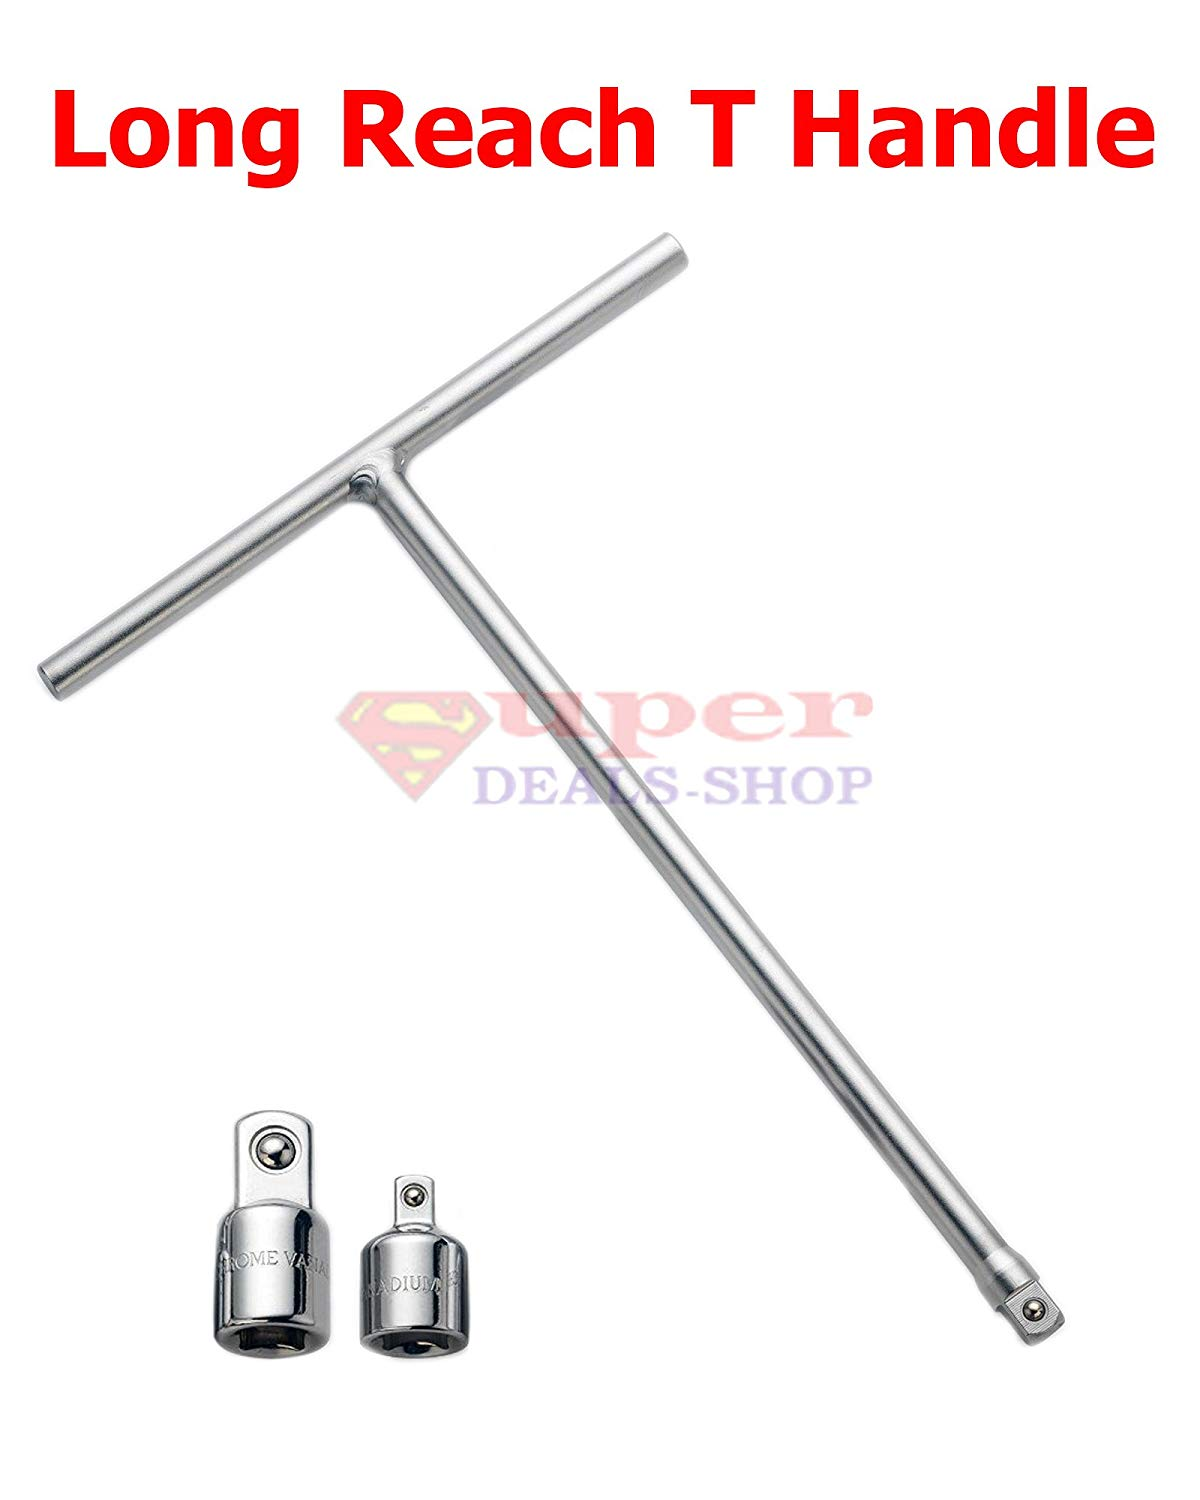 "Drive T Handle Wrench Torque CRV Socket Extension Long Reach T-Handle 3/8"" 1/4"" 1/2"" Super-Deals-Shop"